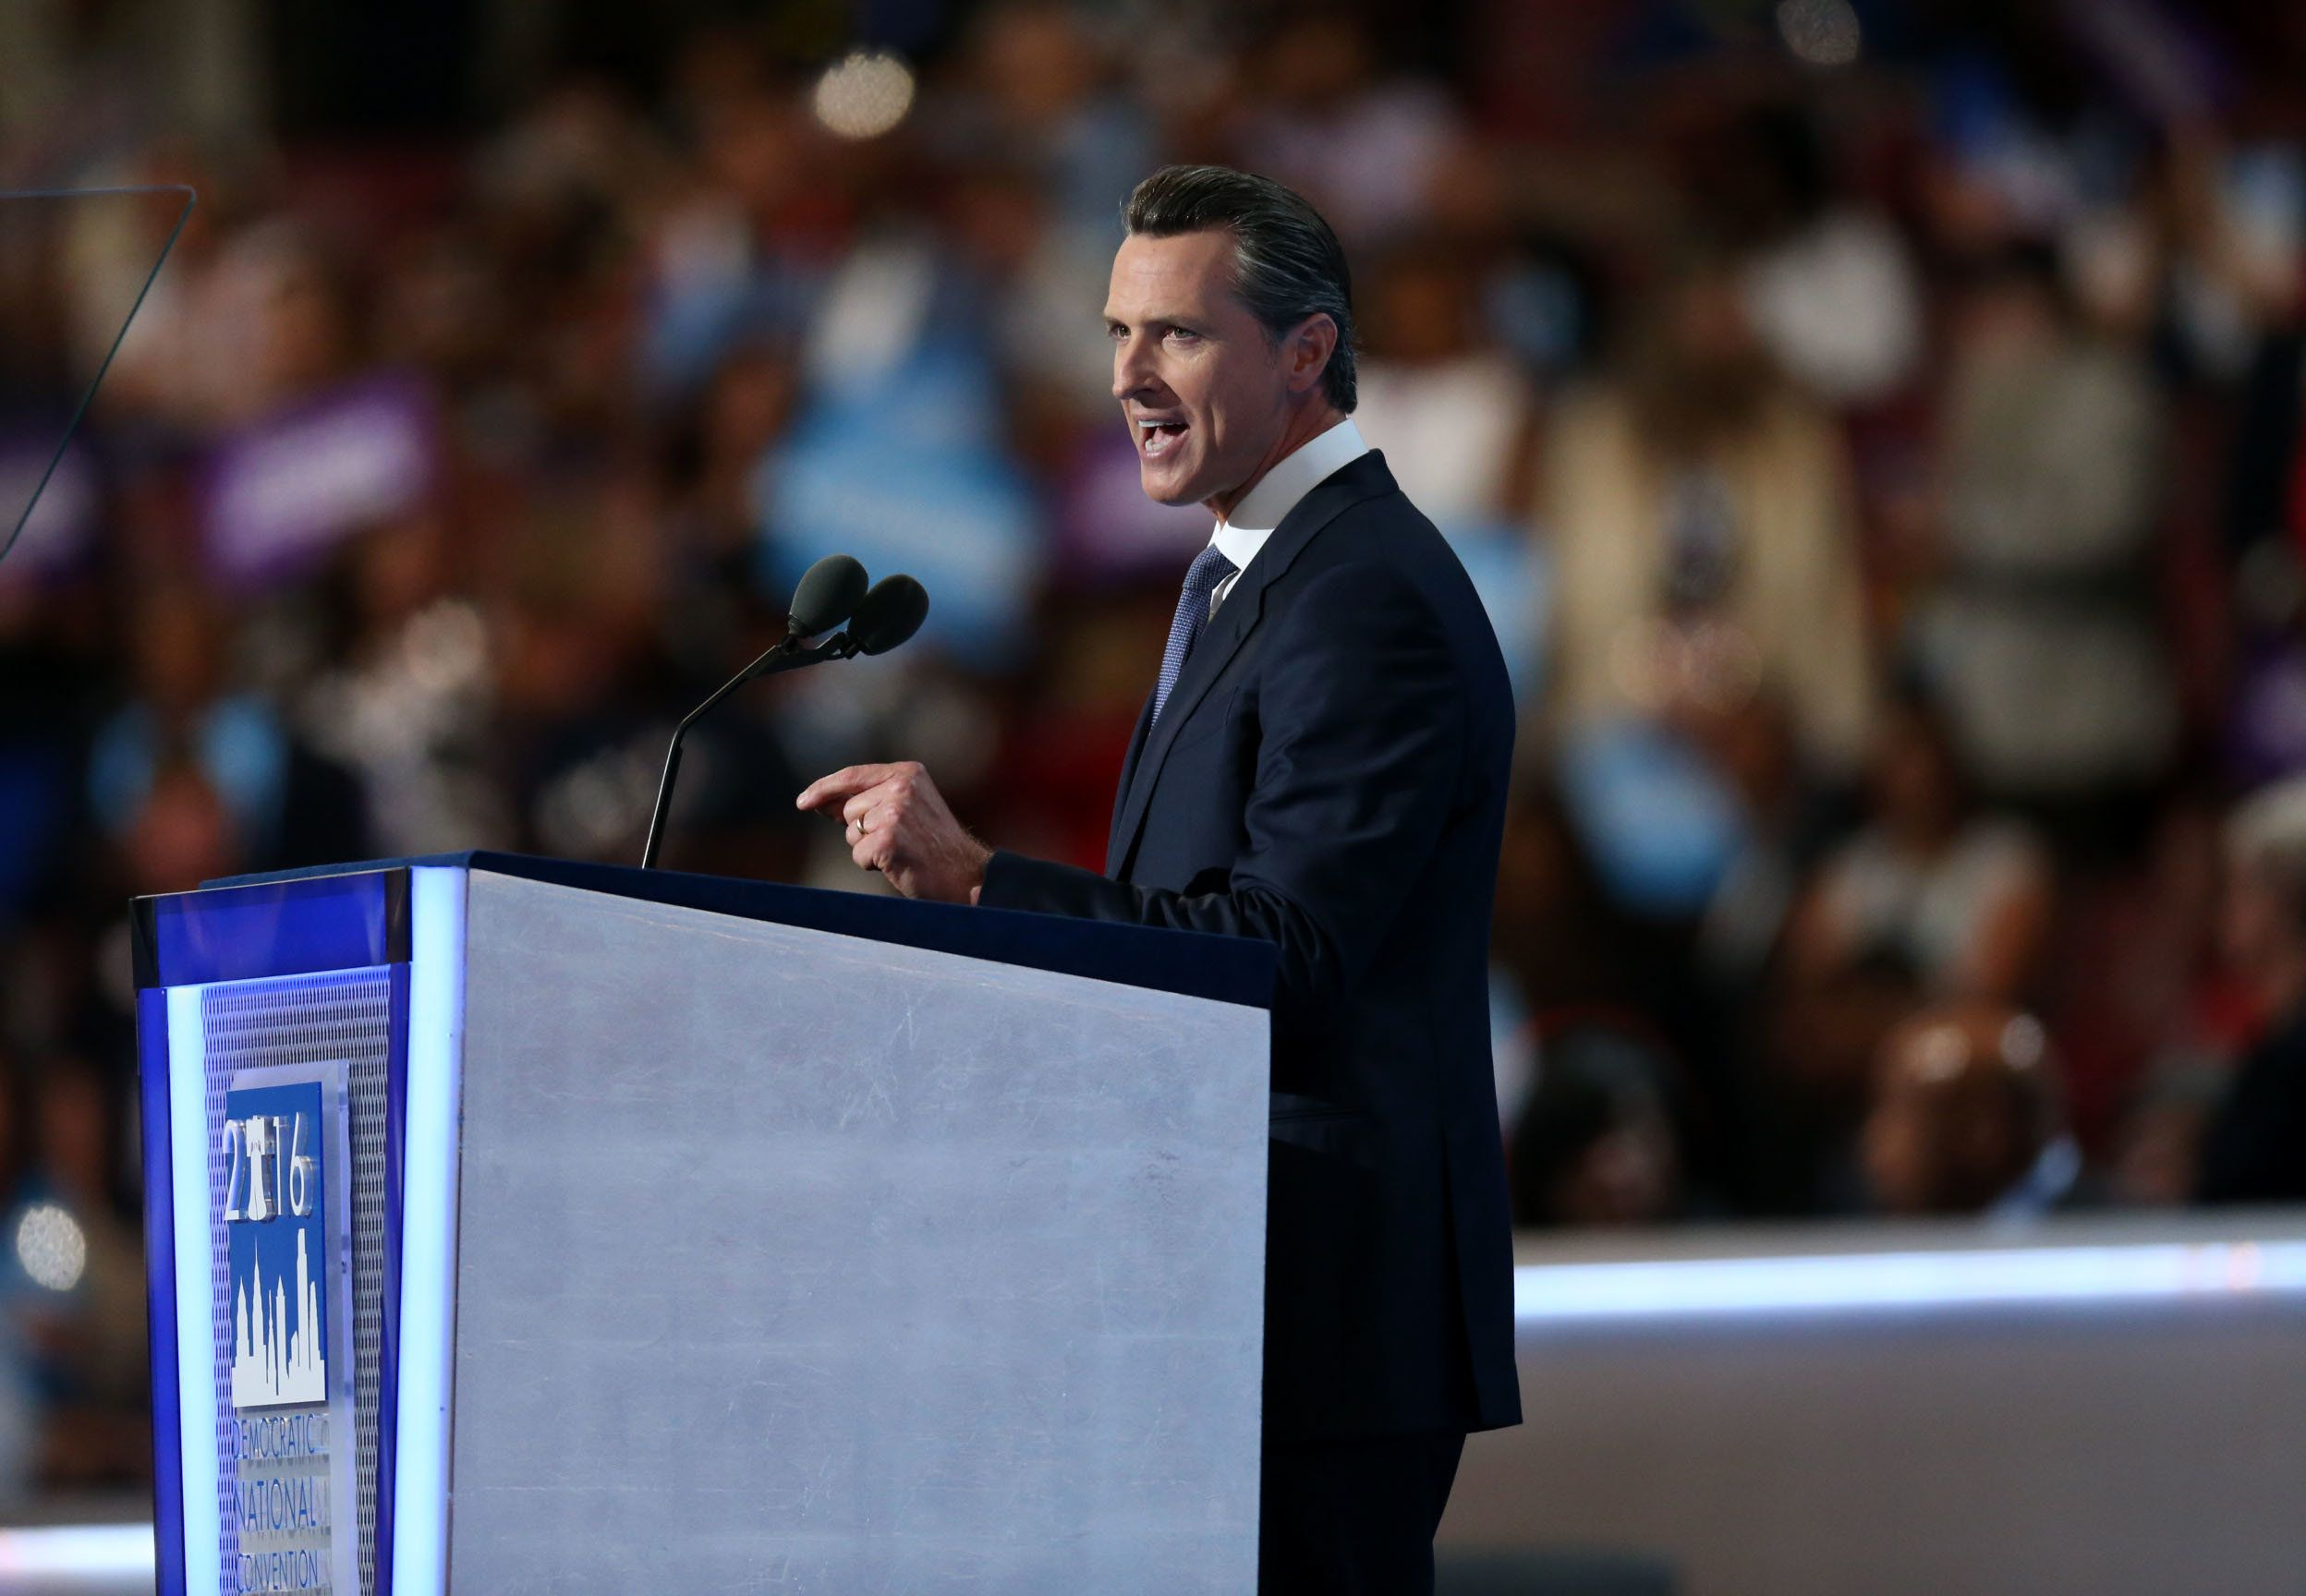 Gavin Newsom, lieutenant governor of California, speaks during the Democratic National Convention (DNC) in Philadelphia, Pennsylvania, U.S., on Wednesday, July 27, 2016. With the historic nomination for the first woman to run as the presidential candidate of a major U.S. political party, Democrats gathered in Philadelphia hoped they had turned a corner on Tuesday. Photographer: Daniel Acker/Bloomberg via Getty Images